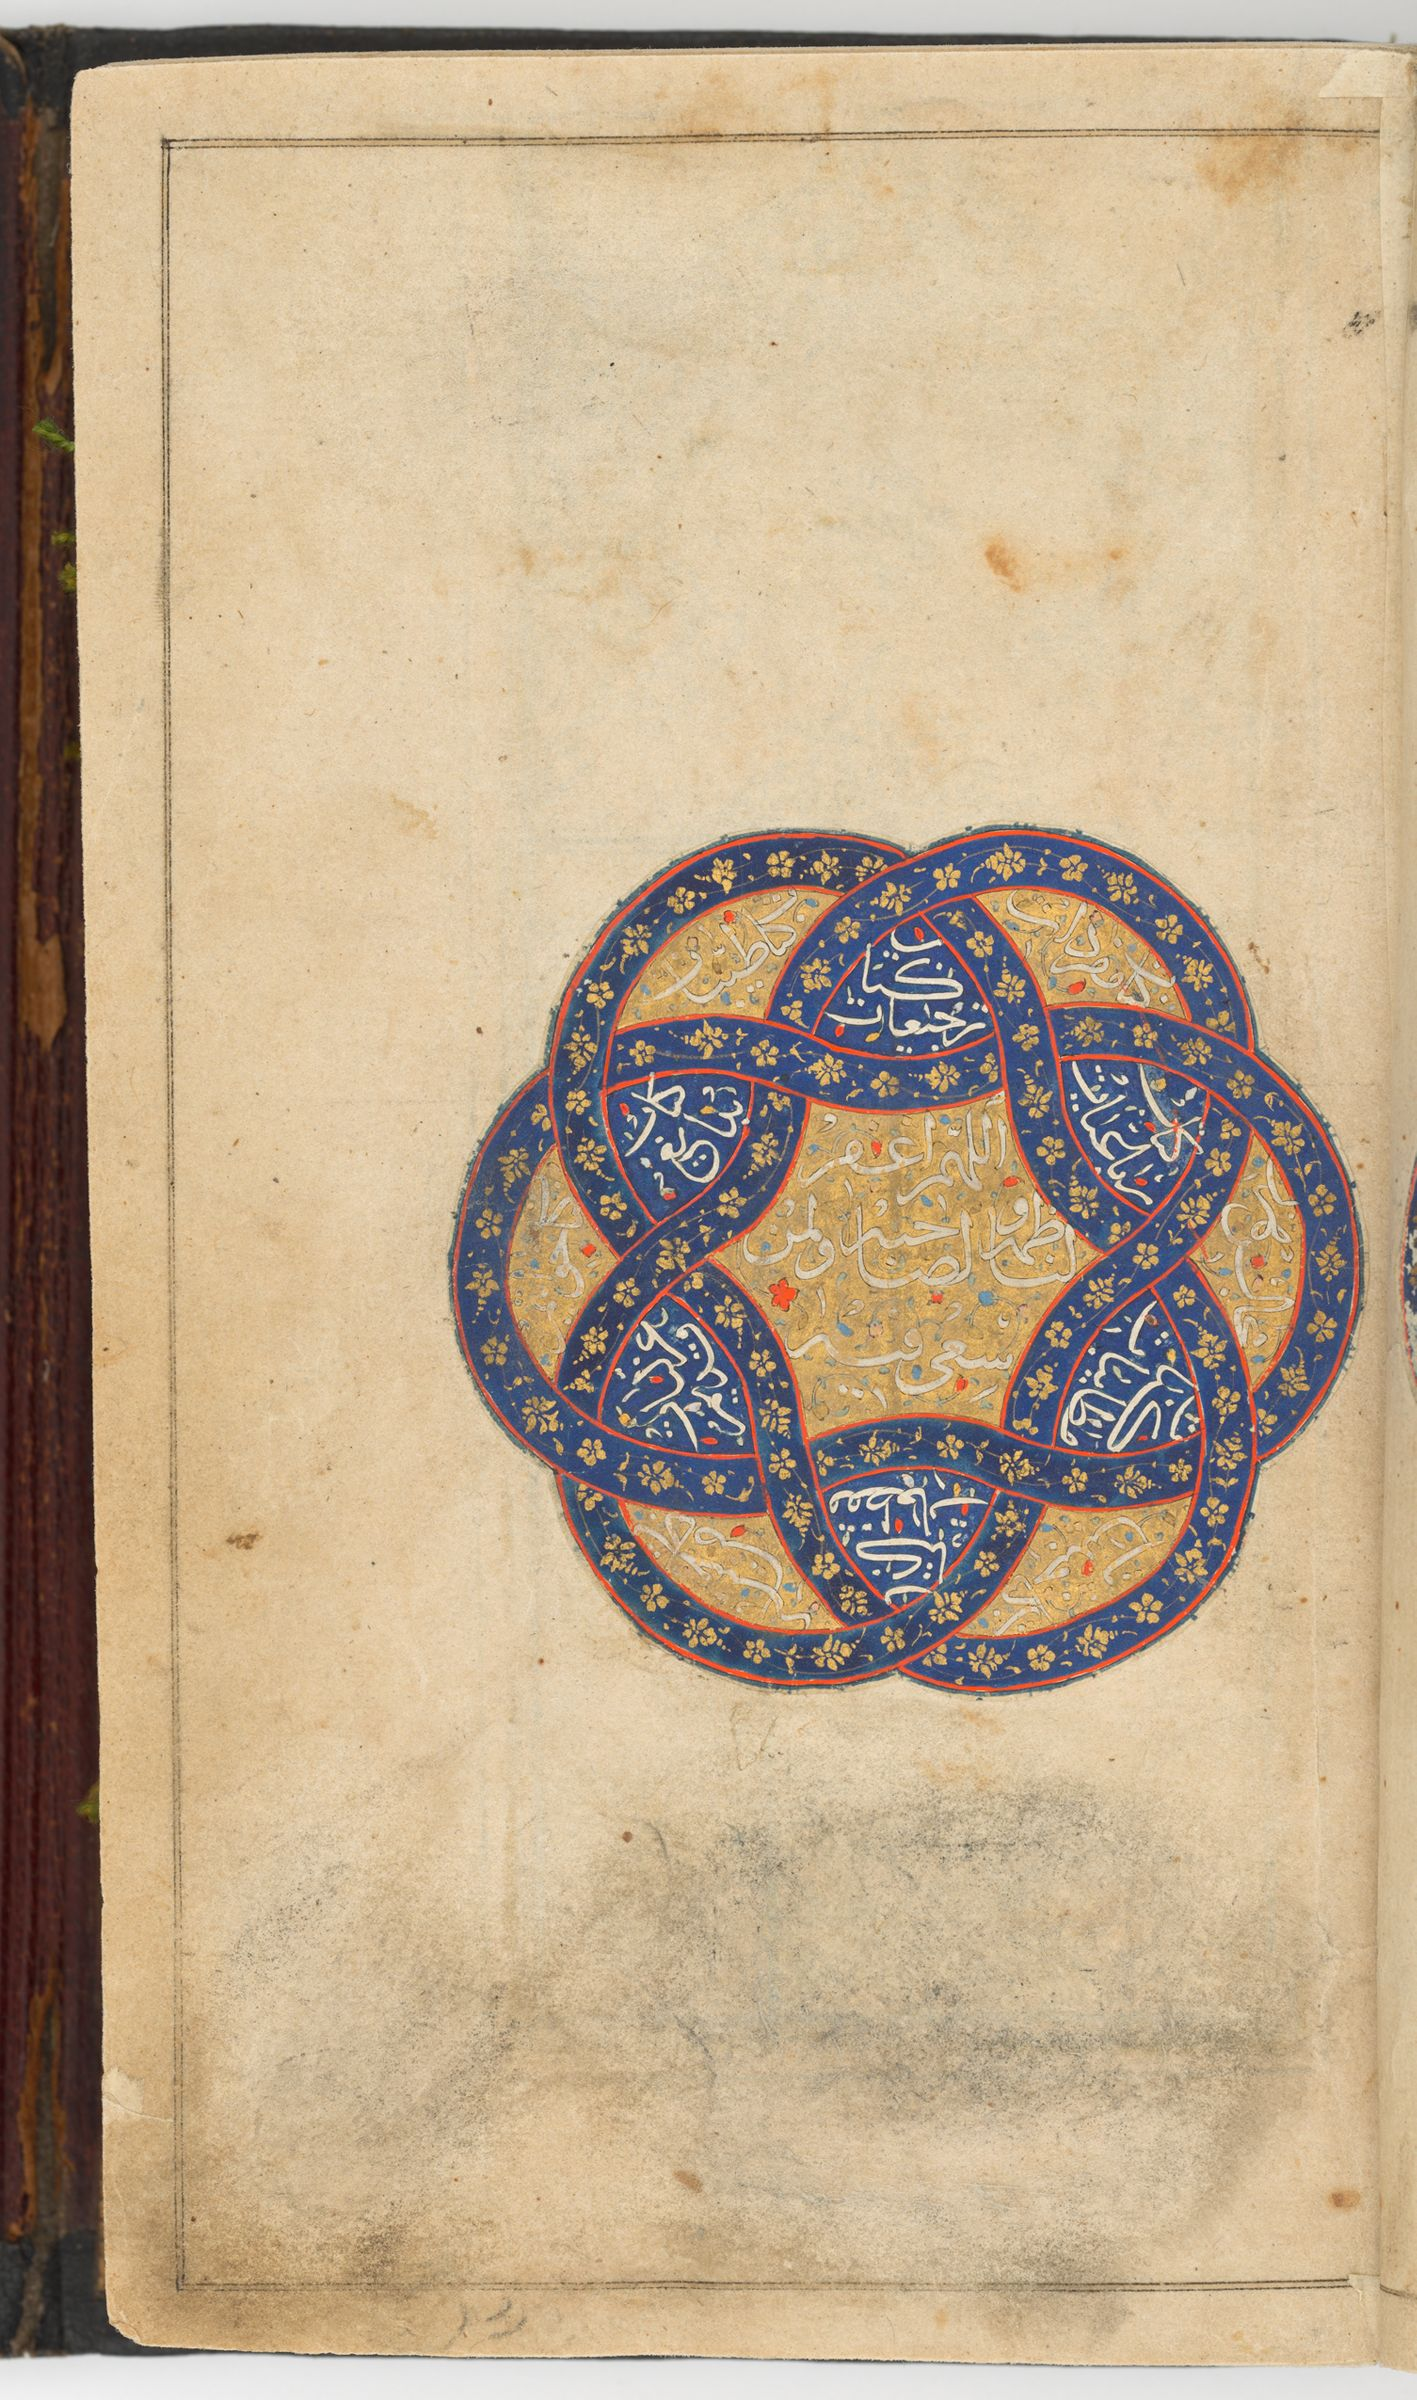 Folio With An Illuminated Roundel And Illuminated Heading (Illuminatied Recto; Illuminated Heading Verso Of Folio 3), From A Manuscript Of The Kulliyat Of Sa'di